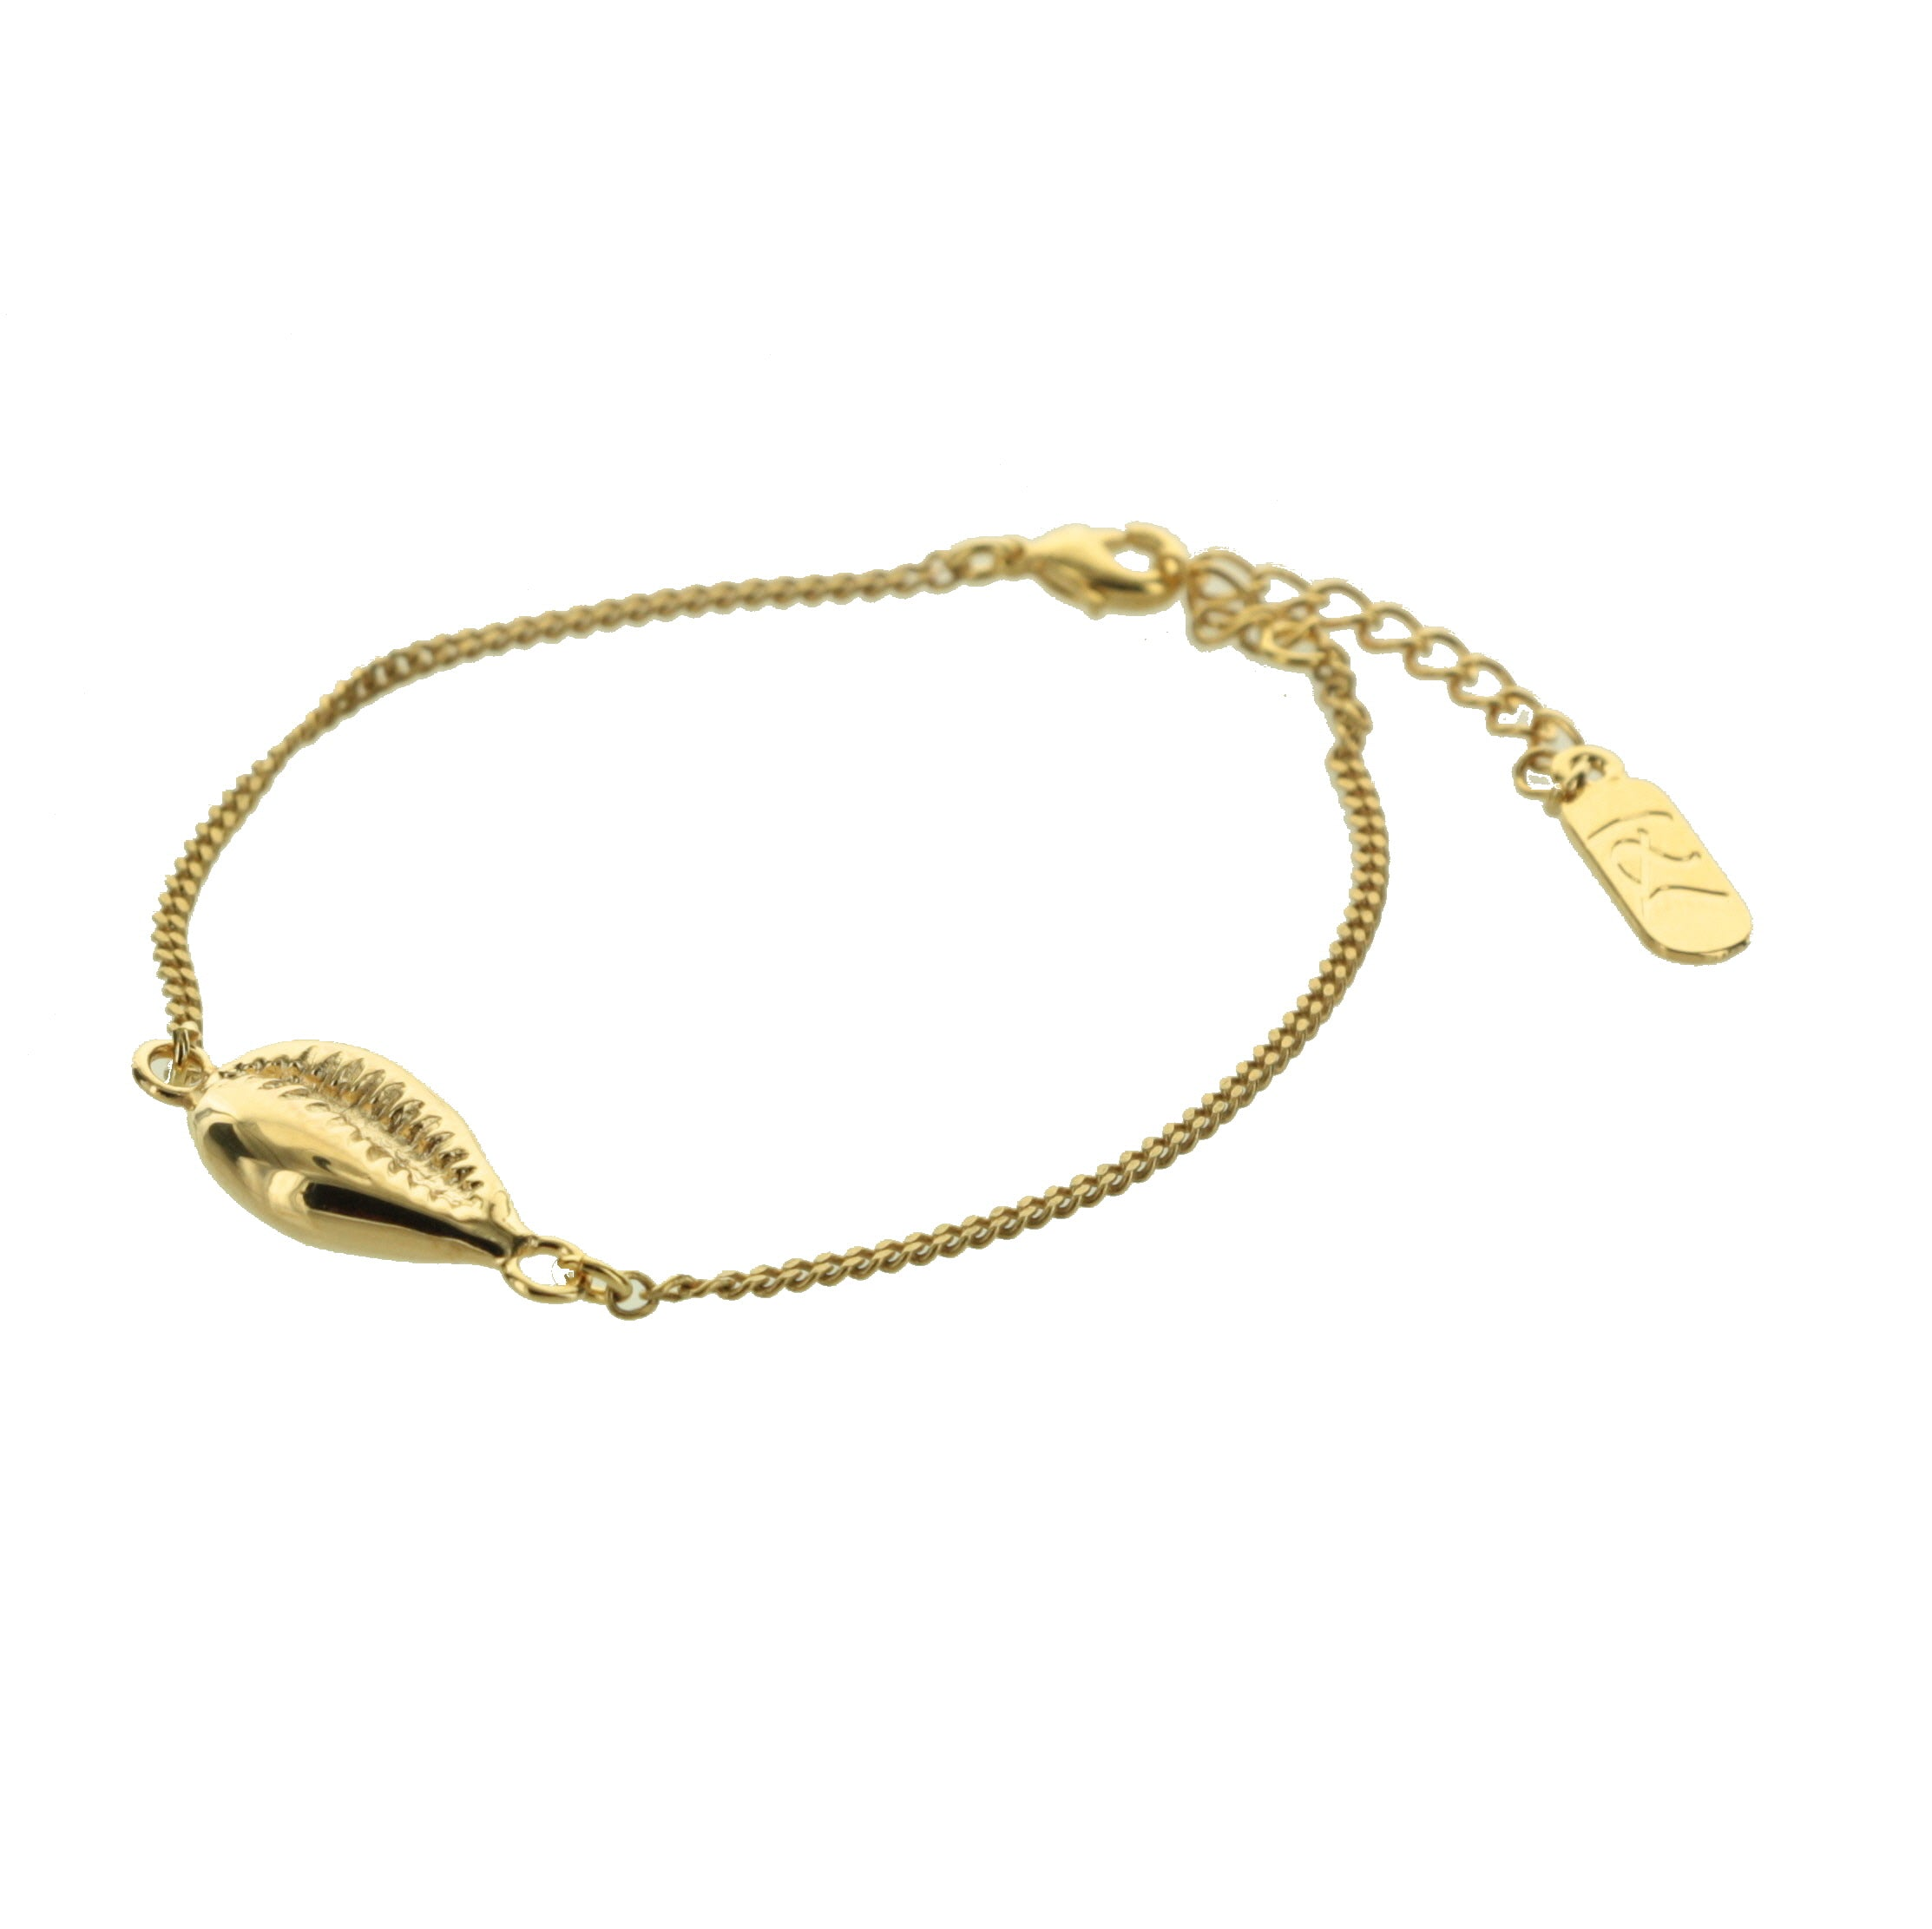 pure anklet bracelet sale online bracelets for design women heart shop yellow gold womens jewels just